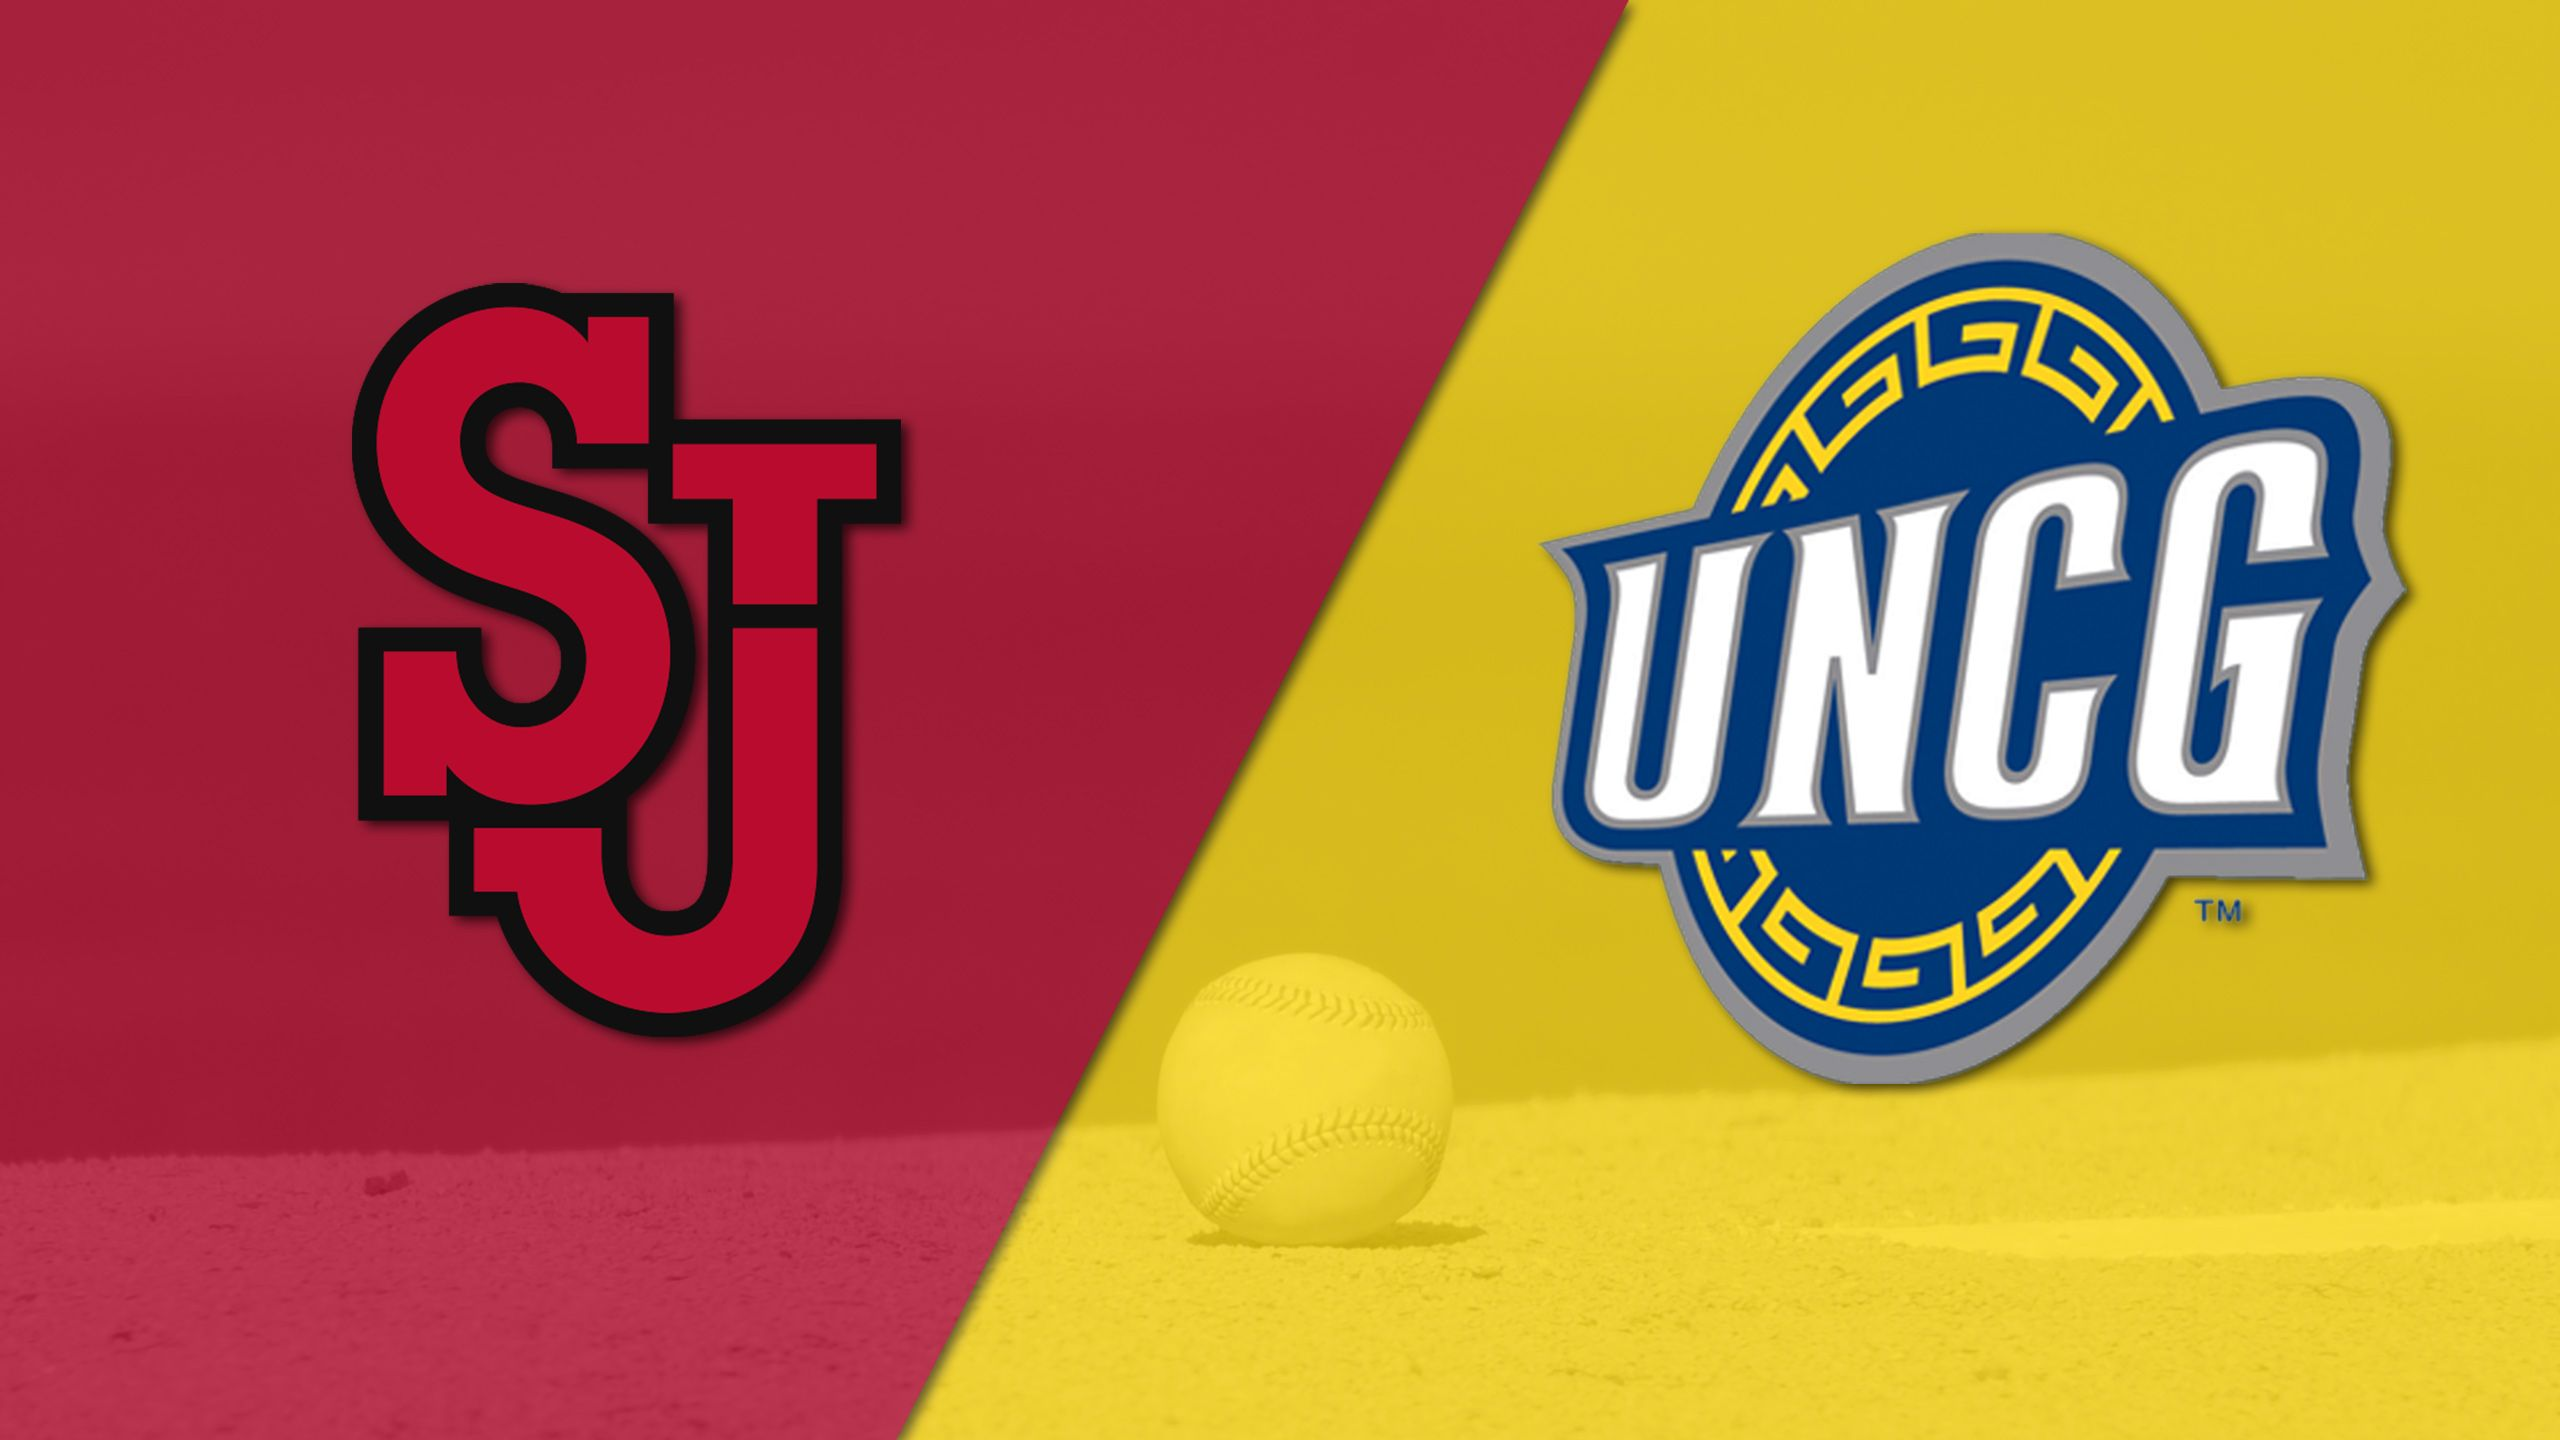 St. John's vs. UNC Greensboro (Site 2 / Game 3) (NCAA Baseball Championship)